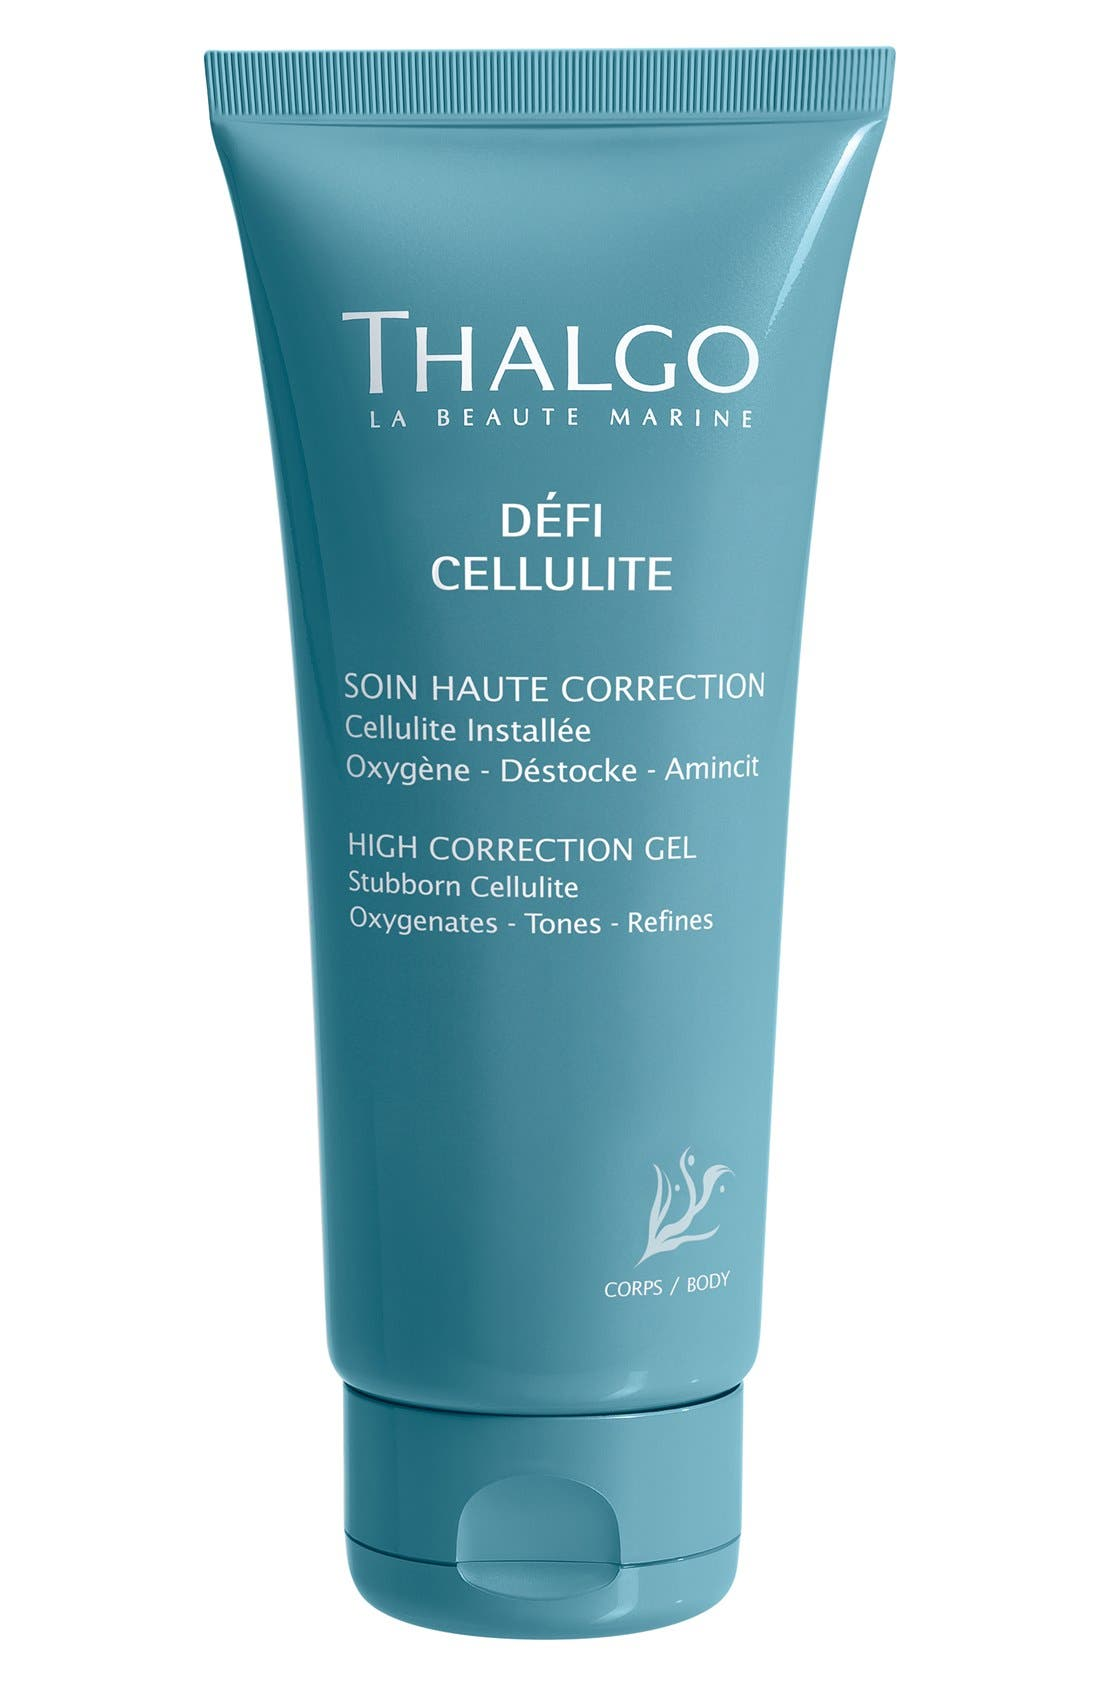 Thalgo High Correction Gel